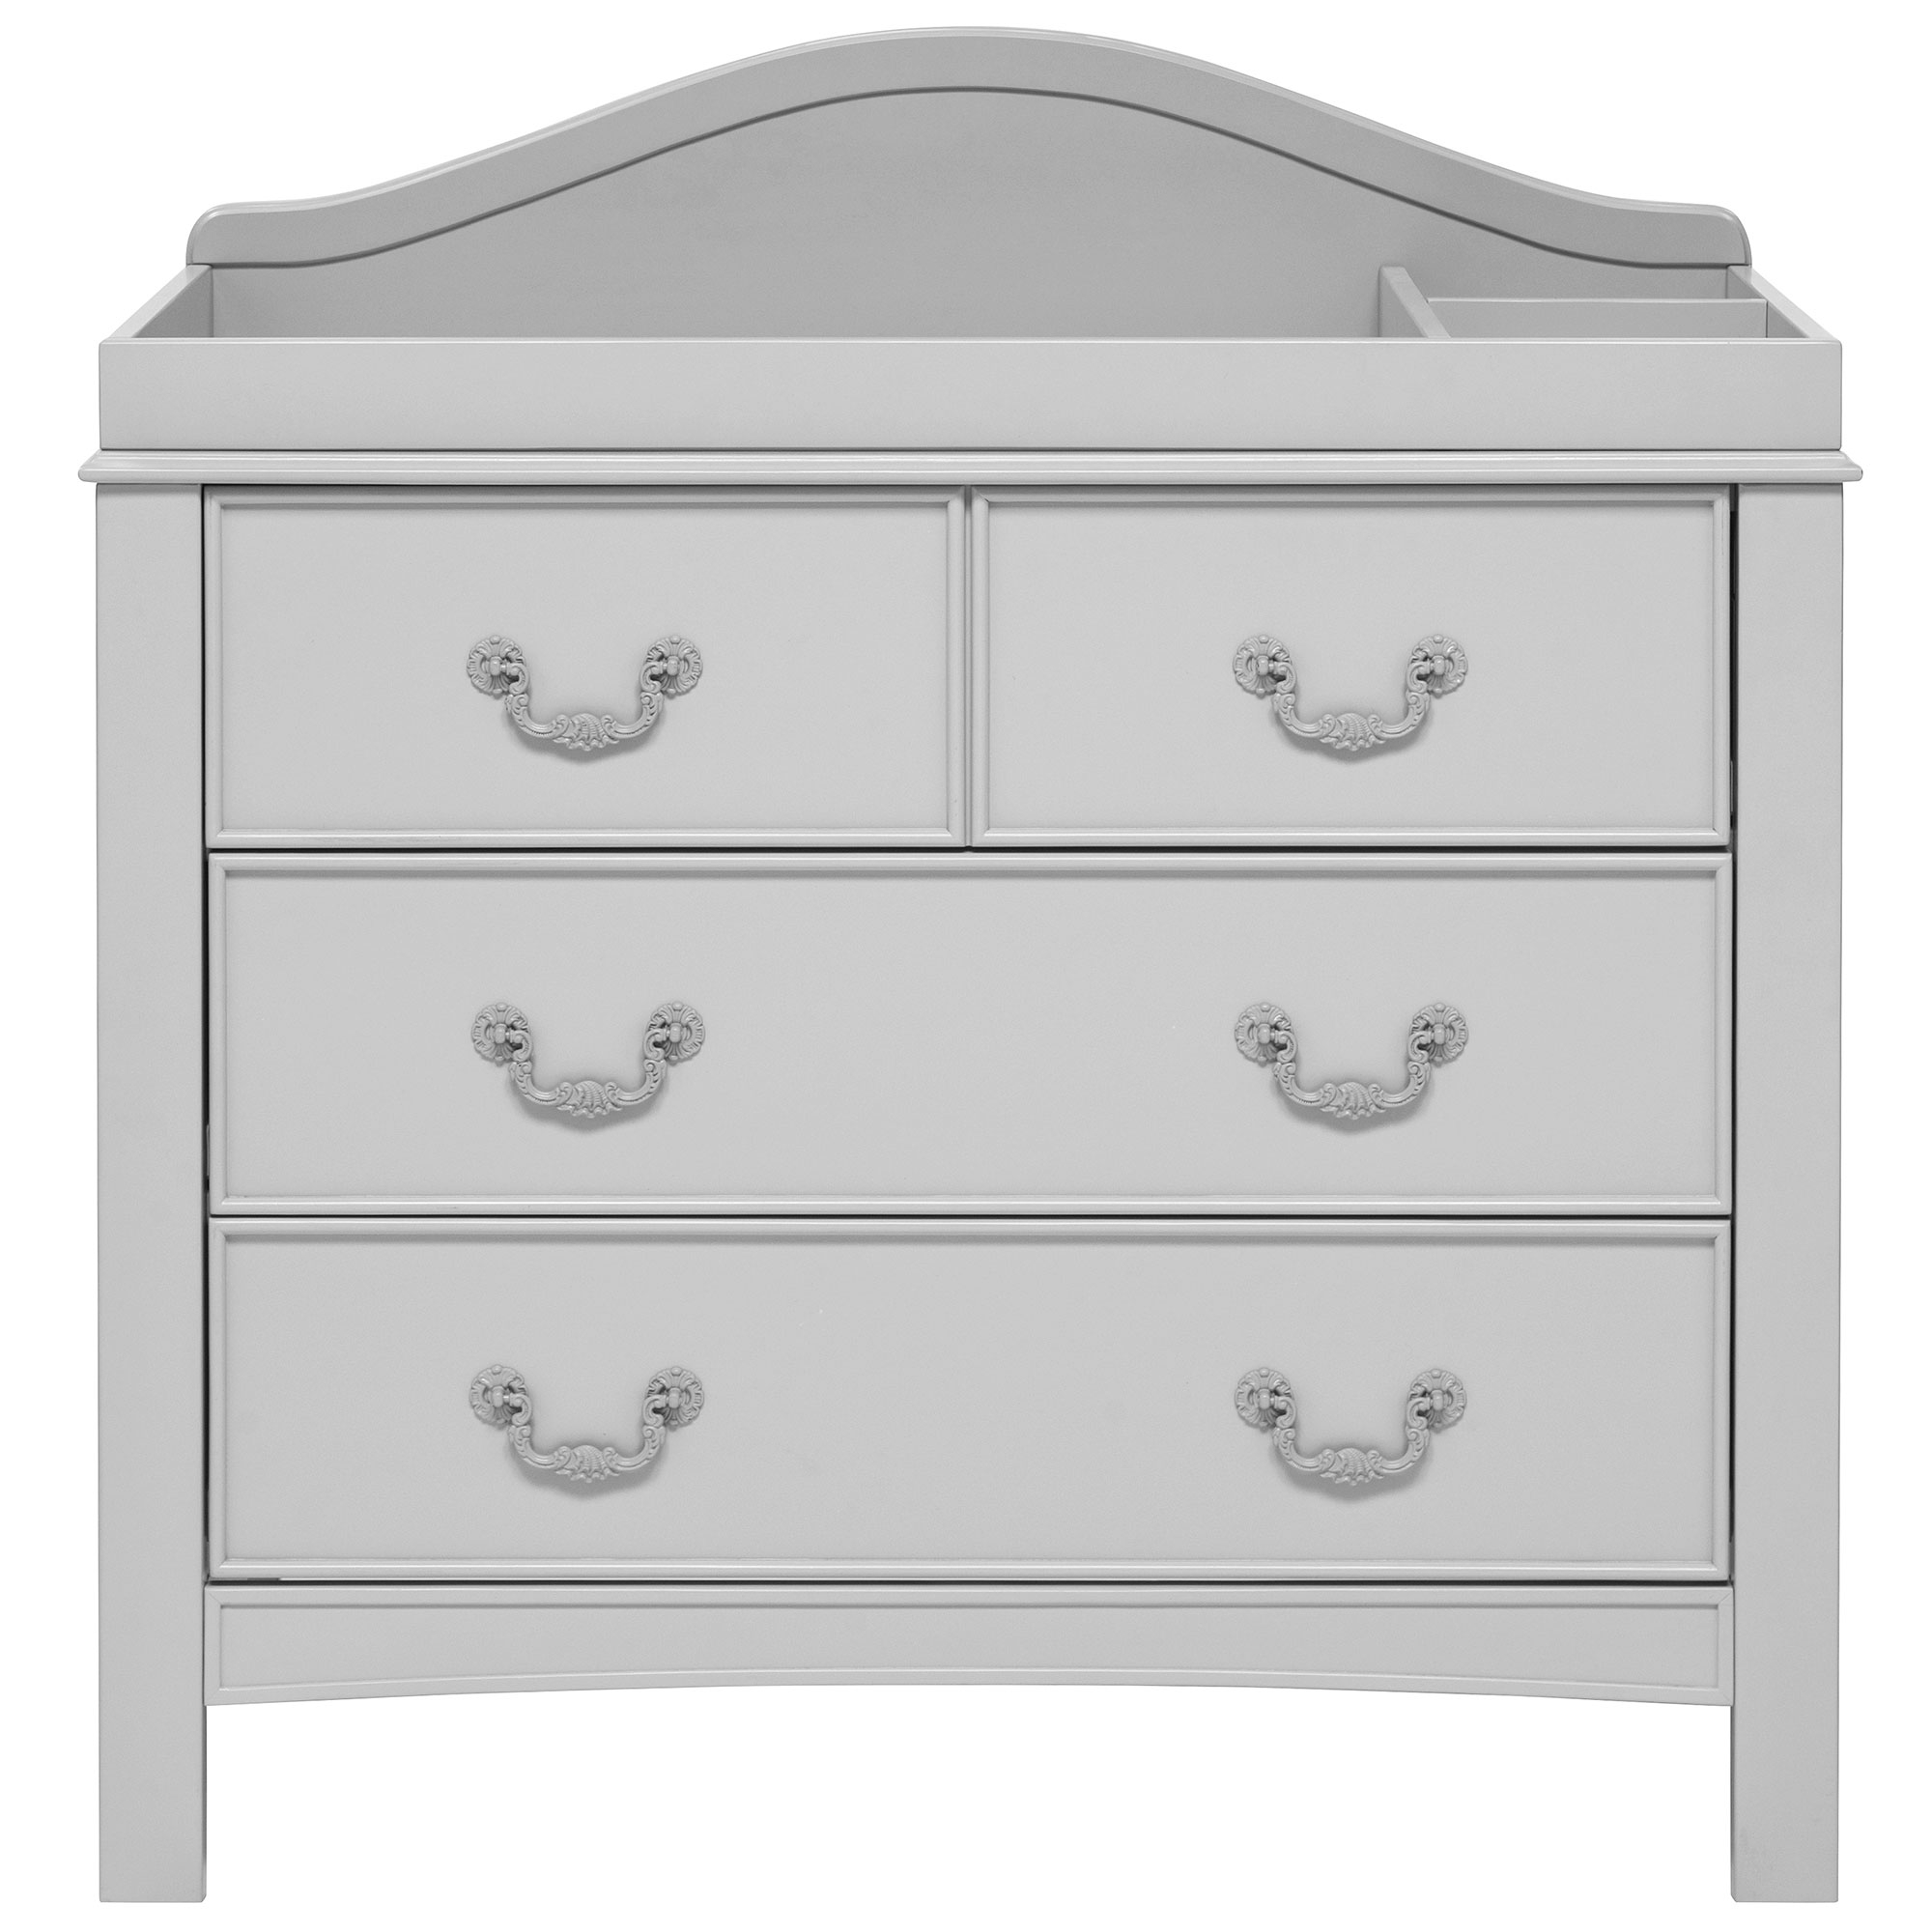 Details About East Coast Nursery Furniture Toulouse Chest Of 3 Drawers Dresser In French Grey